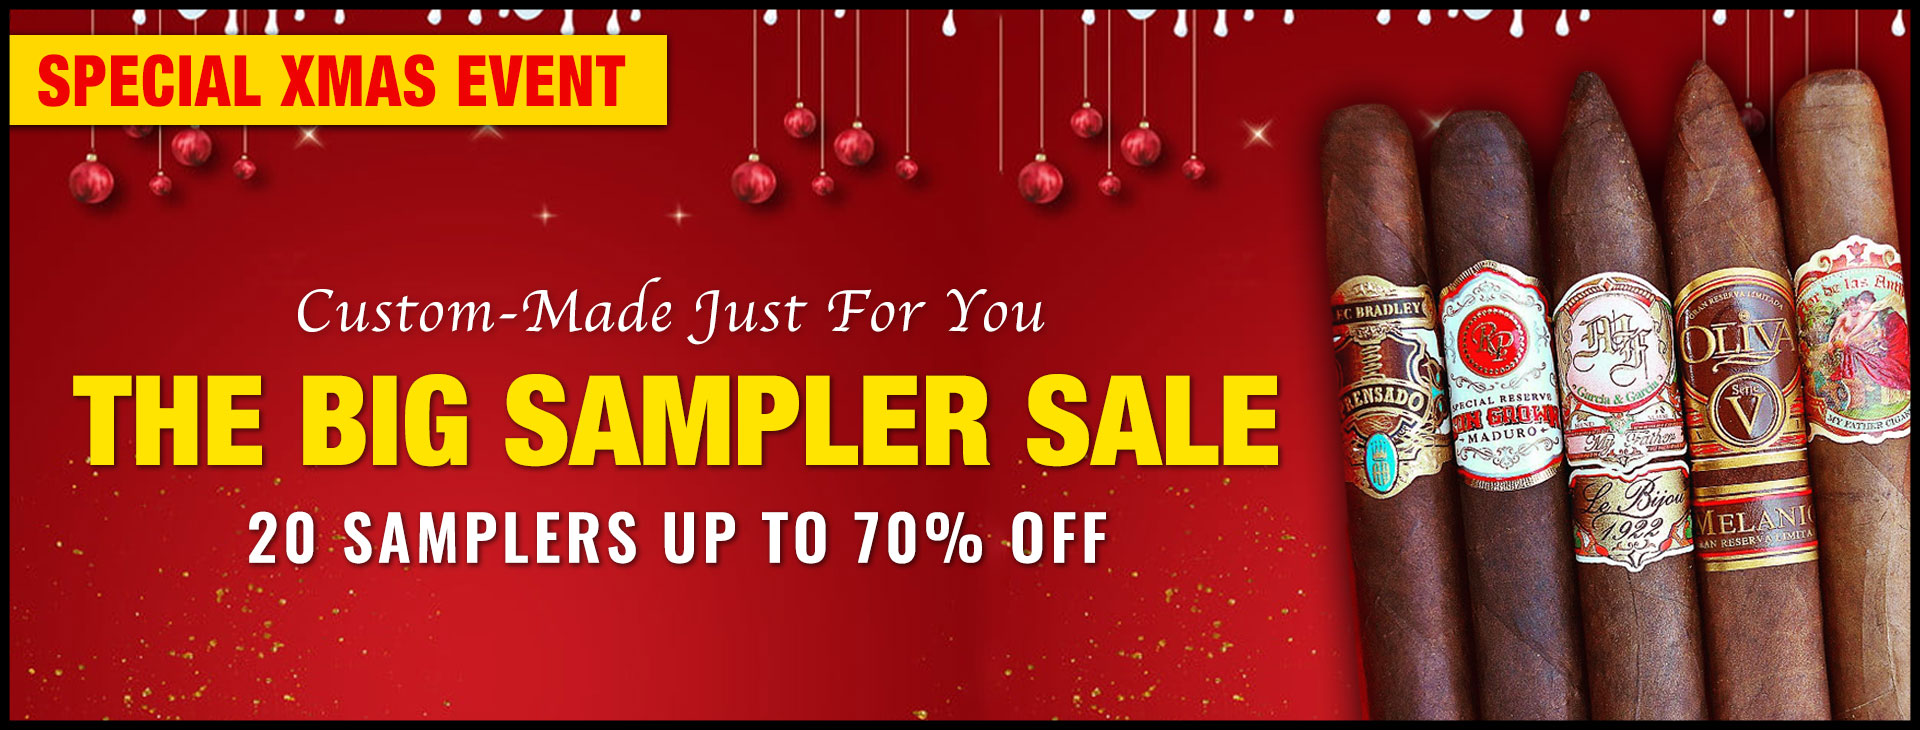 big-xmas-sampler-sale-2020-banner.jpg